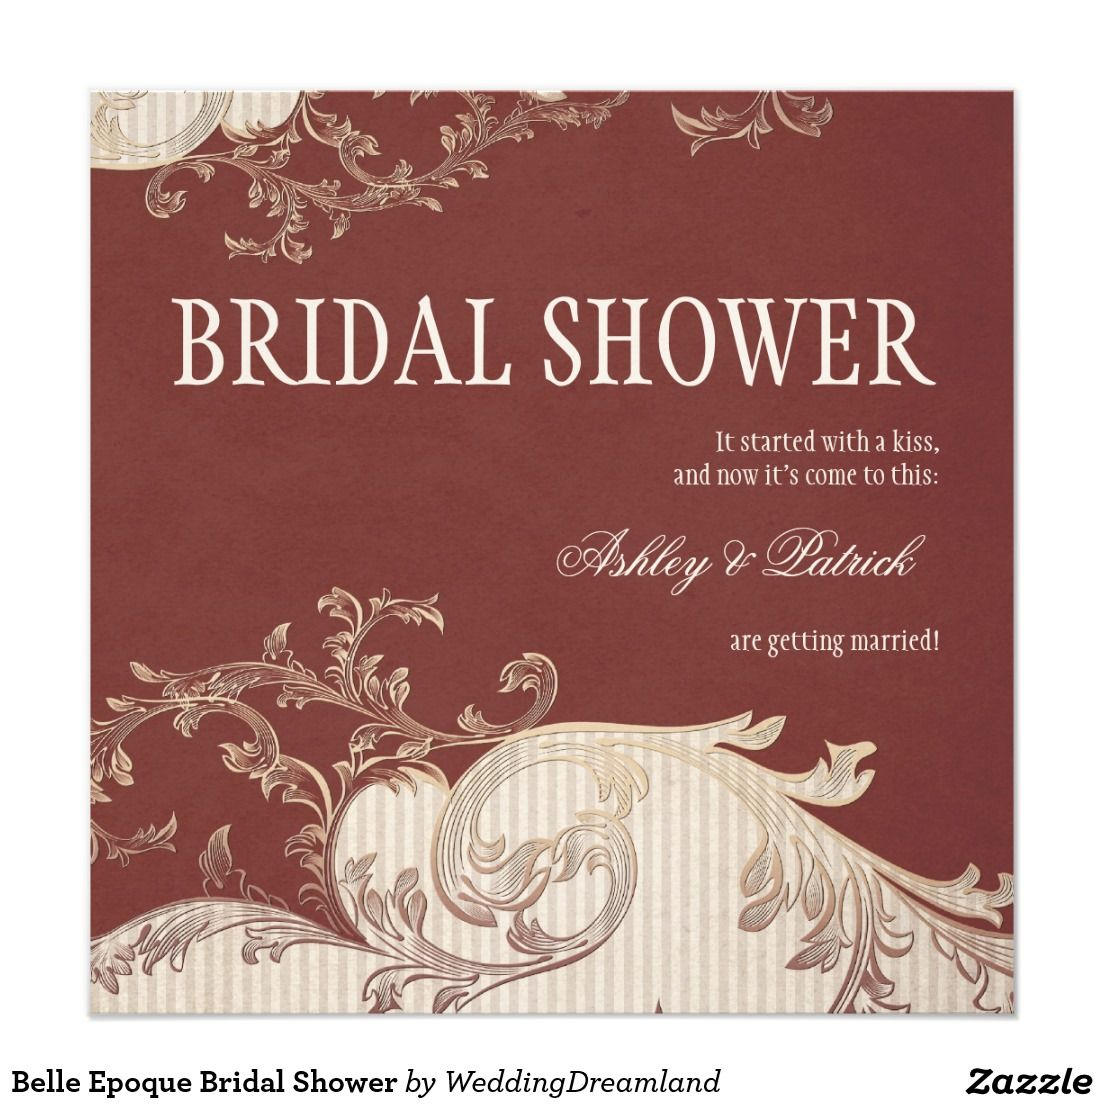 Belle Epoque Bridal Shower Card | Shower invitations and Bridal showers